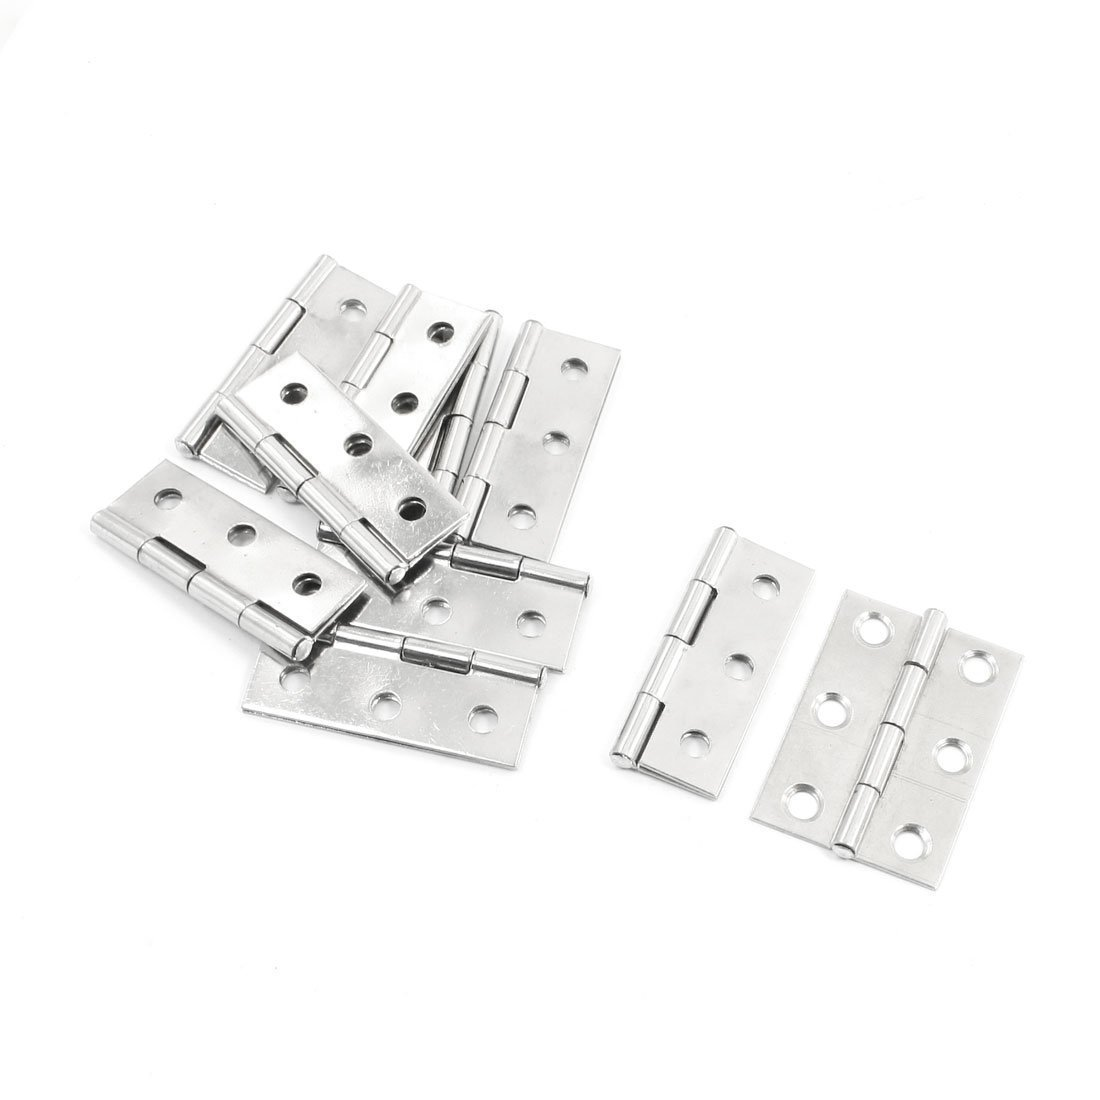 VNDEFUL 10Pcs Cabinet Gate Closet Door 3-inch Long Stainless Steel Butt Hinge